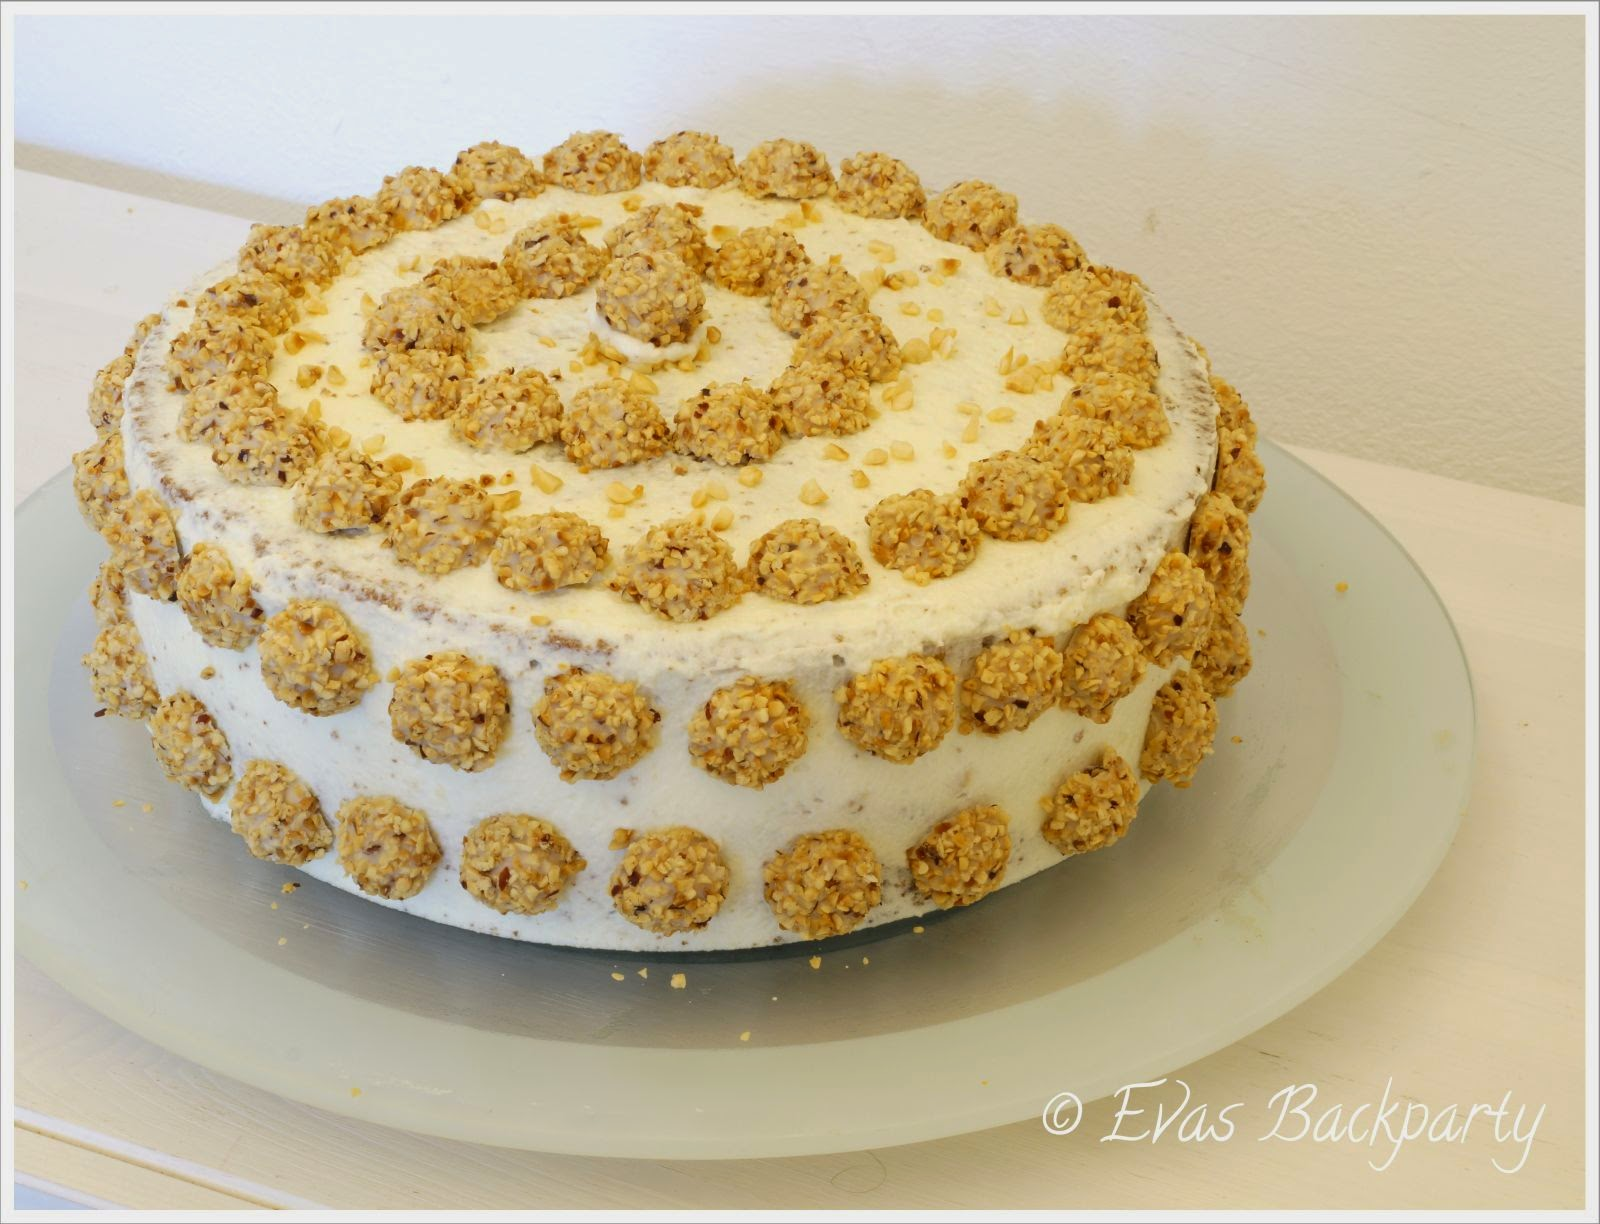 Evas Backparty : leckere, nussige Giotto-Torte  Evas Backparty ...